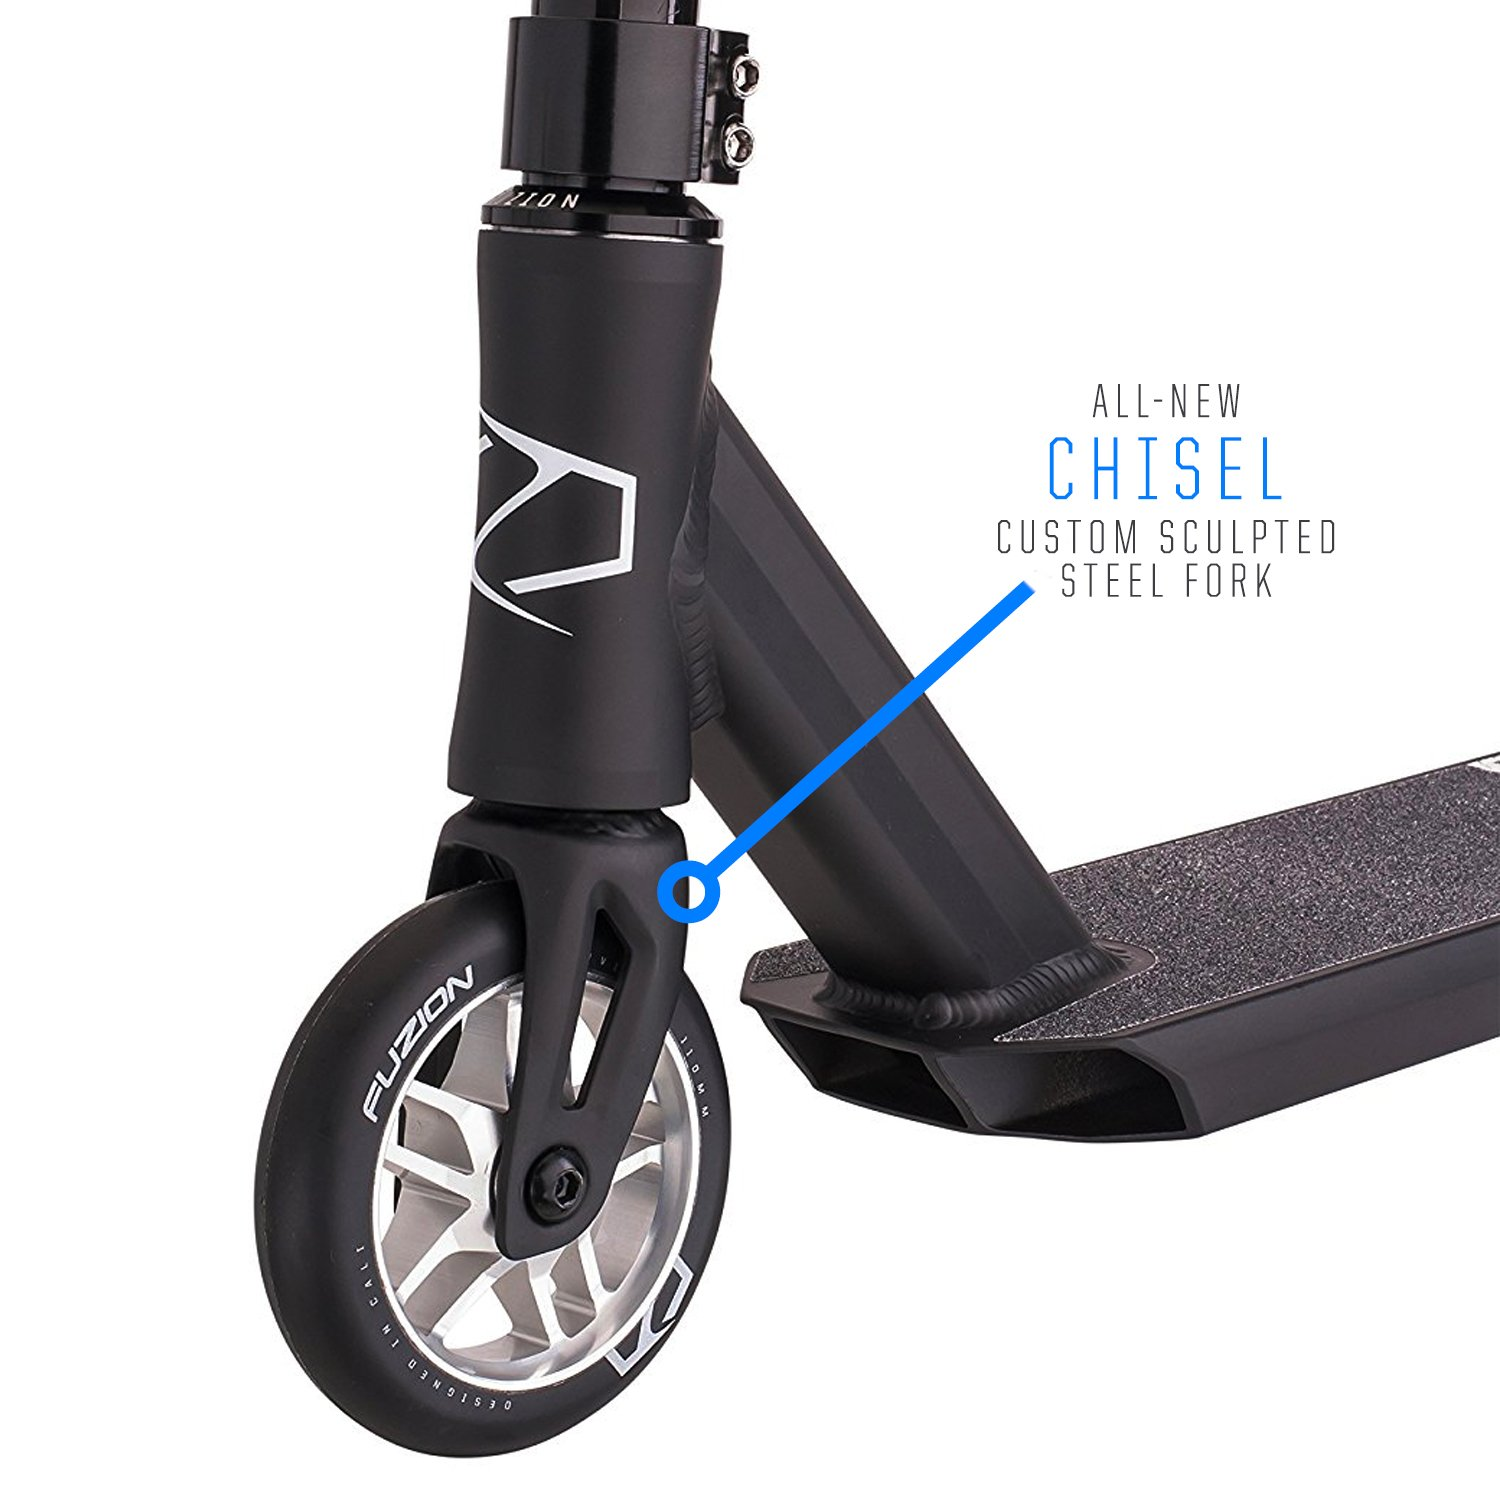 Fuzion Z250 Pro Scooters - Trick Scooter - Intermediate and Beginner Stunt Scooters for Kids 8 Years and Up, Teens and Adults – Durable, Smooth, Freestyle Kick Scooter for Boys and Girls (Black) by Fuzion (Image #2)